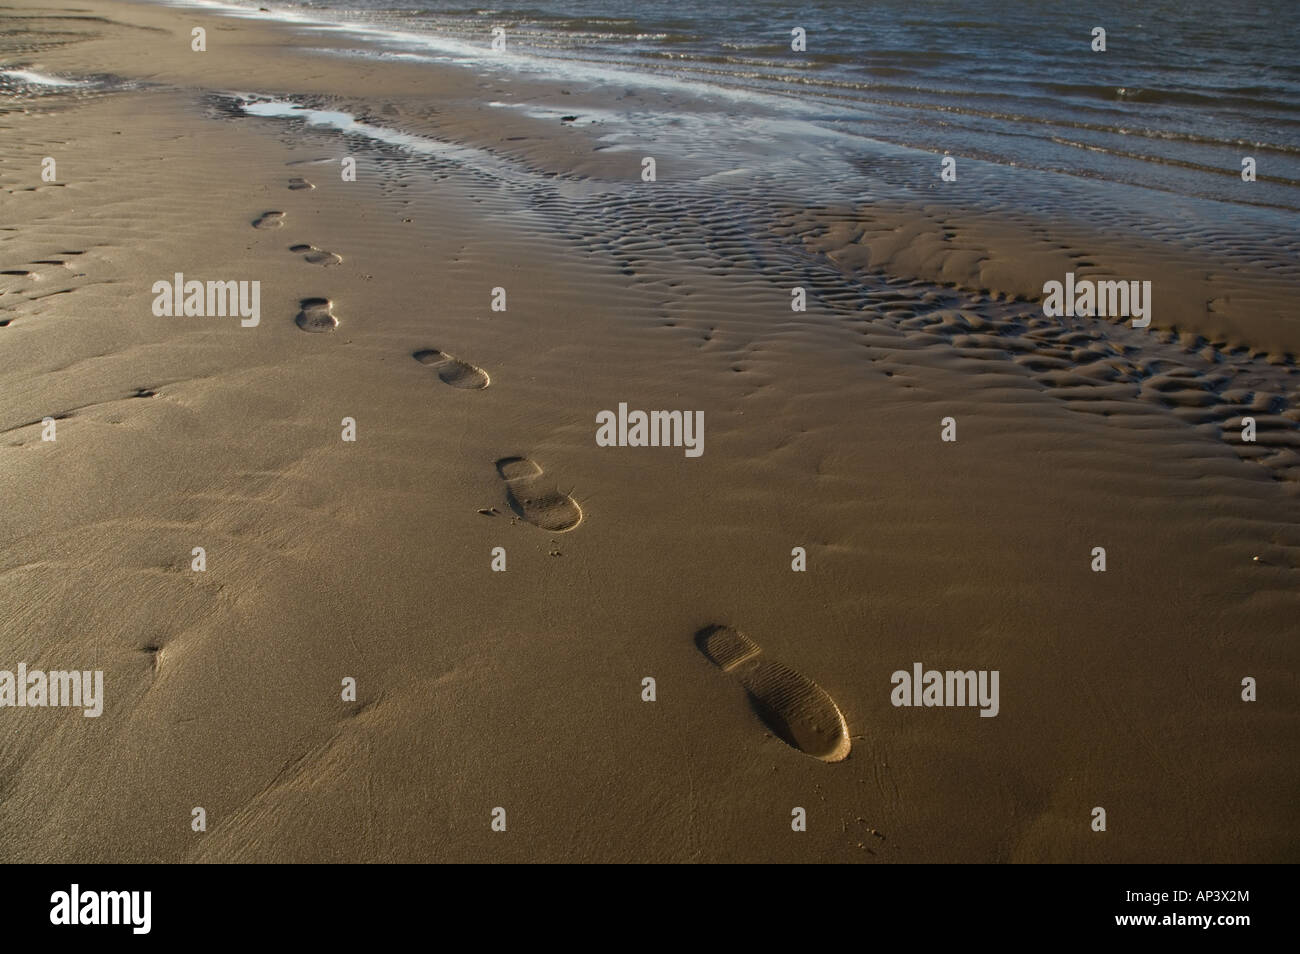 Footprints on Beach Stock Photo